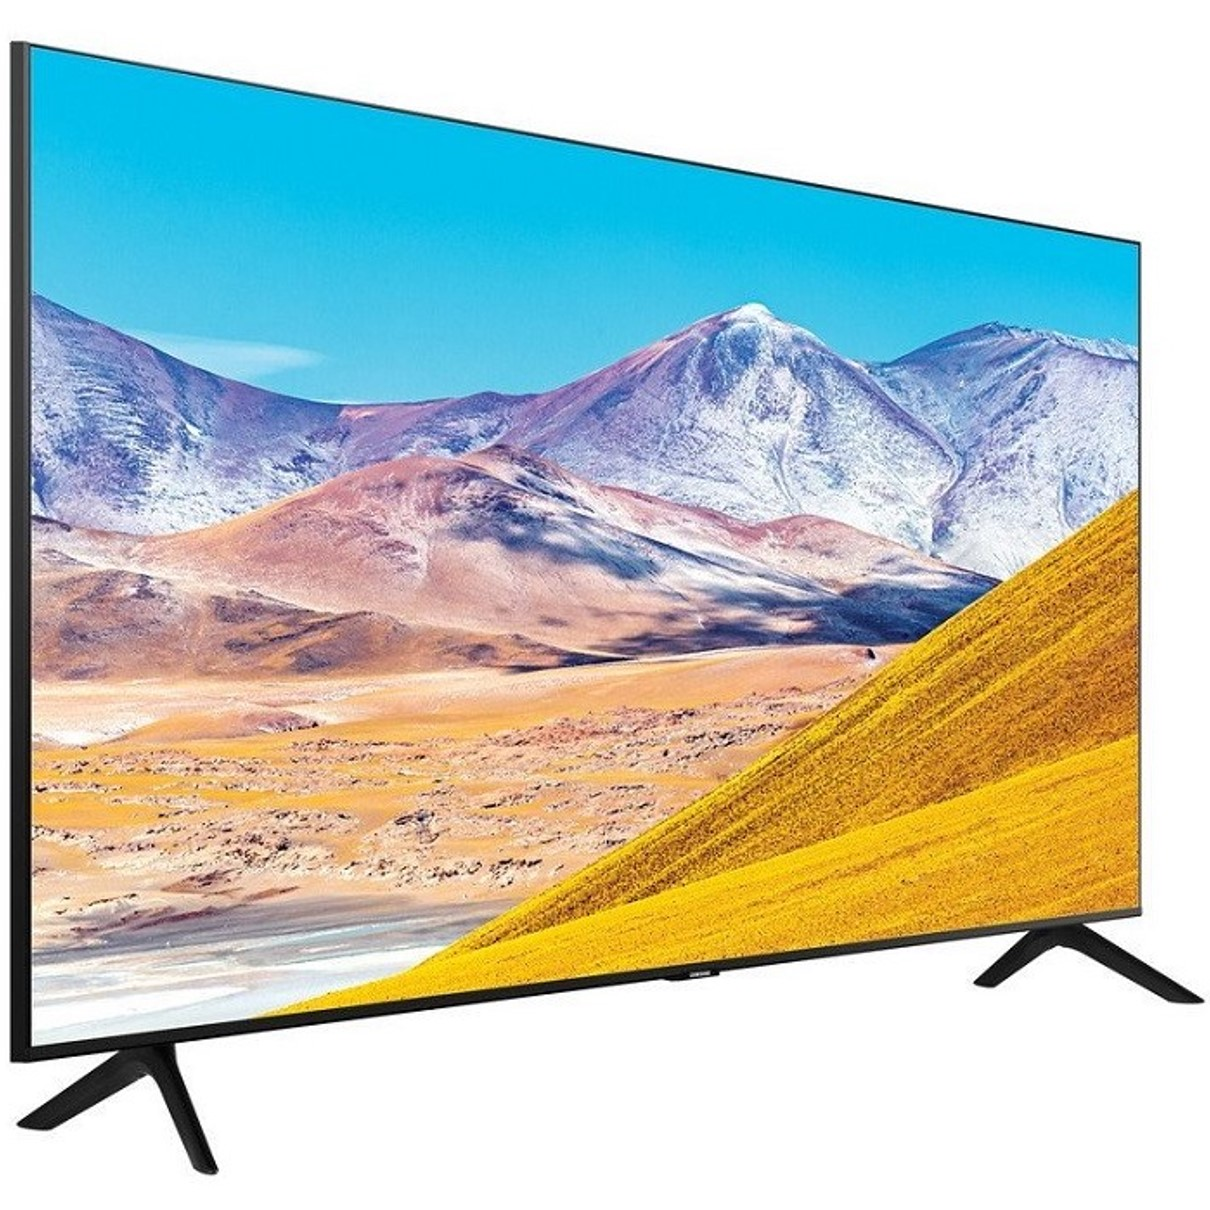 Tv samsung 43pulgadas led 4k uhd -  ue43tu8005 -  gama 2020 -  hdr10+ -  smart tv -  3 hdmi -  2 usb -  wifi -  tdt2